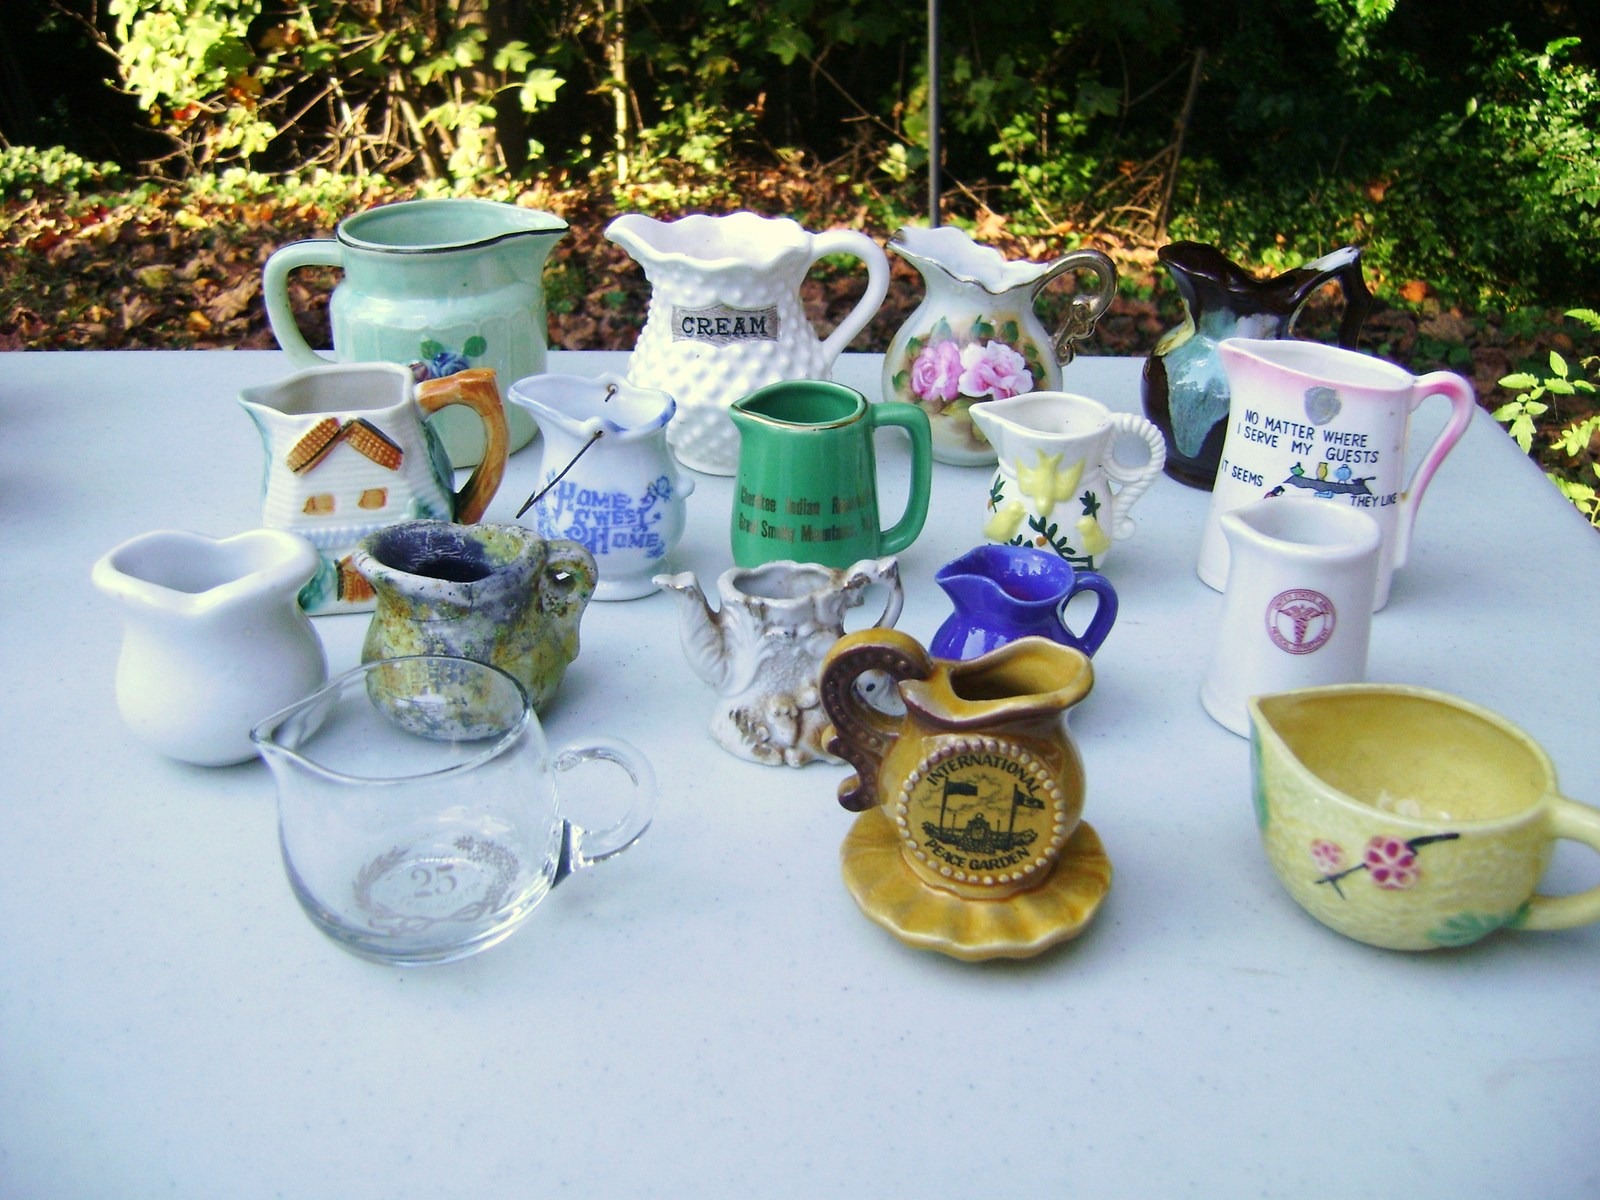 Vintage Pitcher & Creamer Lot 1  - $75.00